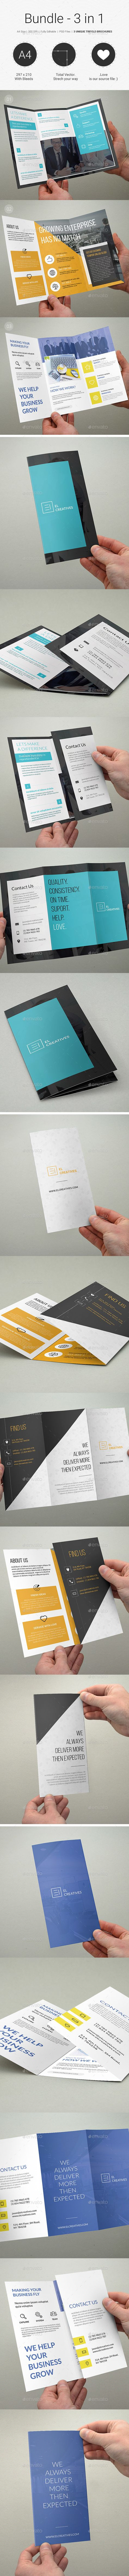 did you know vistaprint has premium business cards check mine out